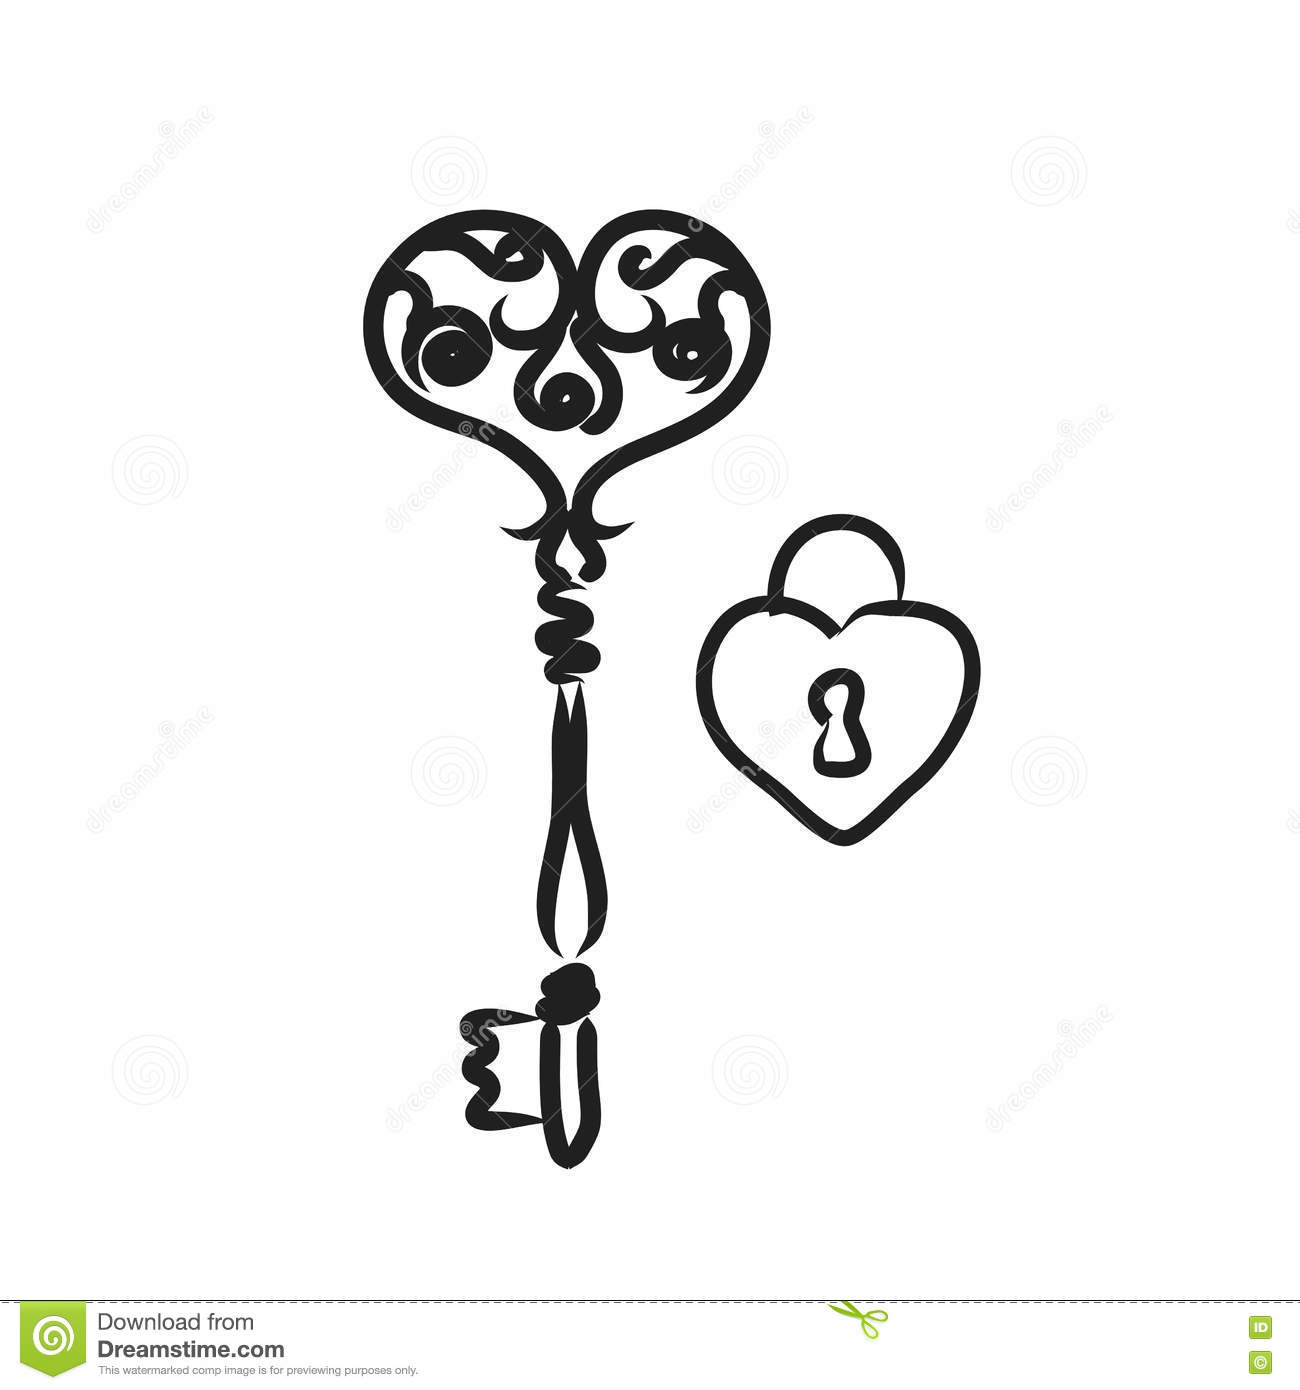 Line Art Key : Key with heart shape lock line art illustration black and